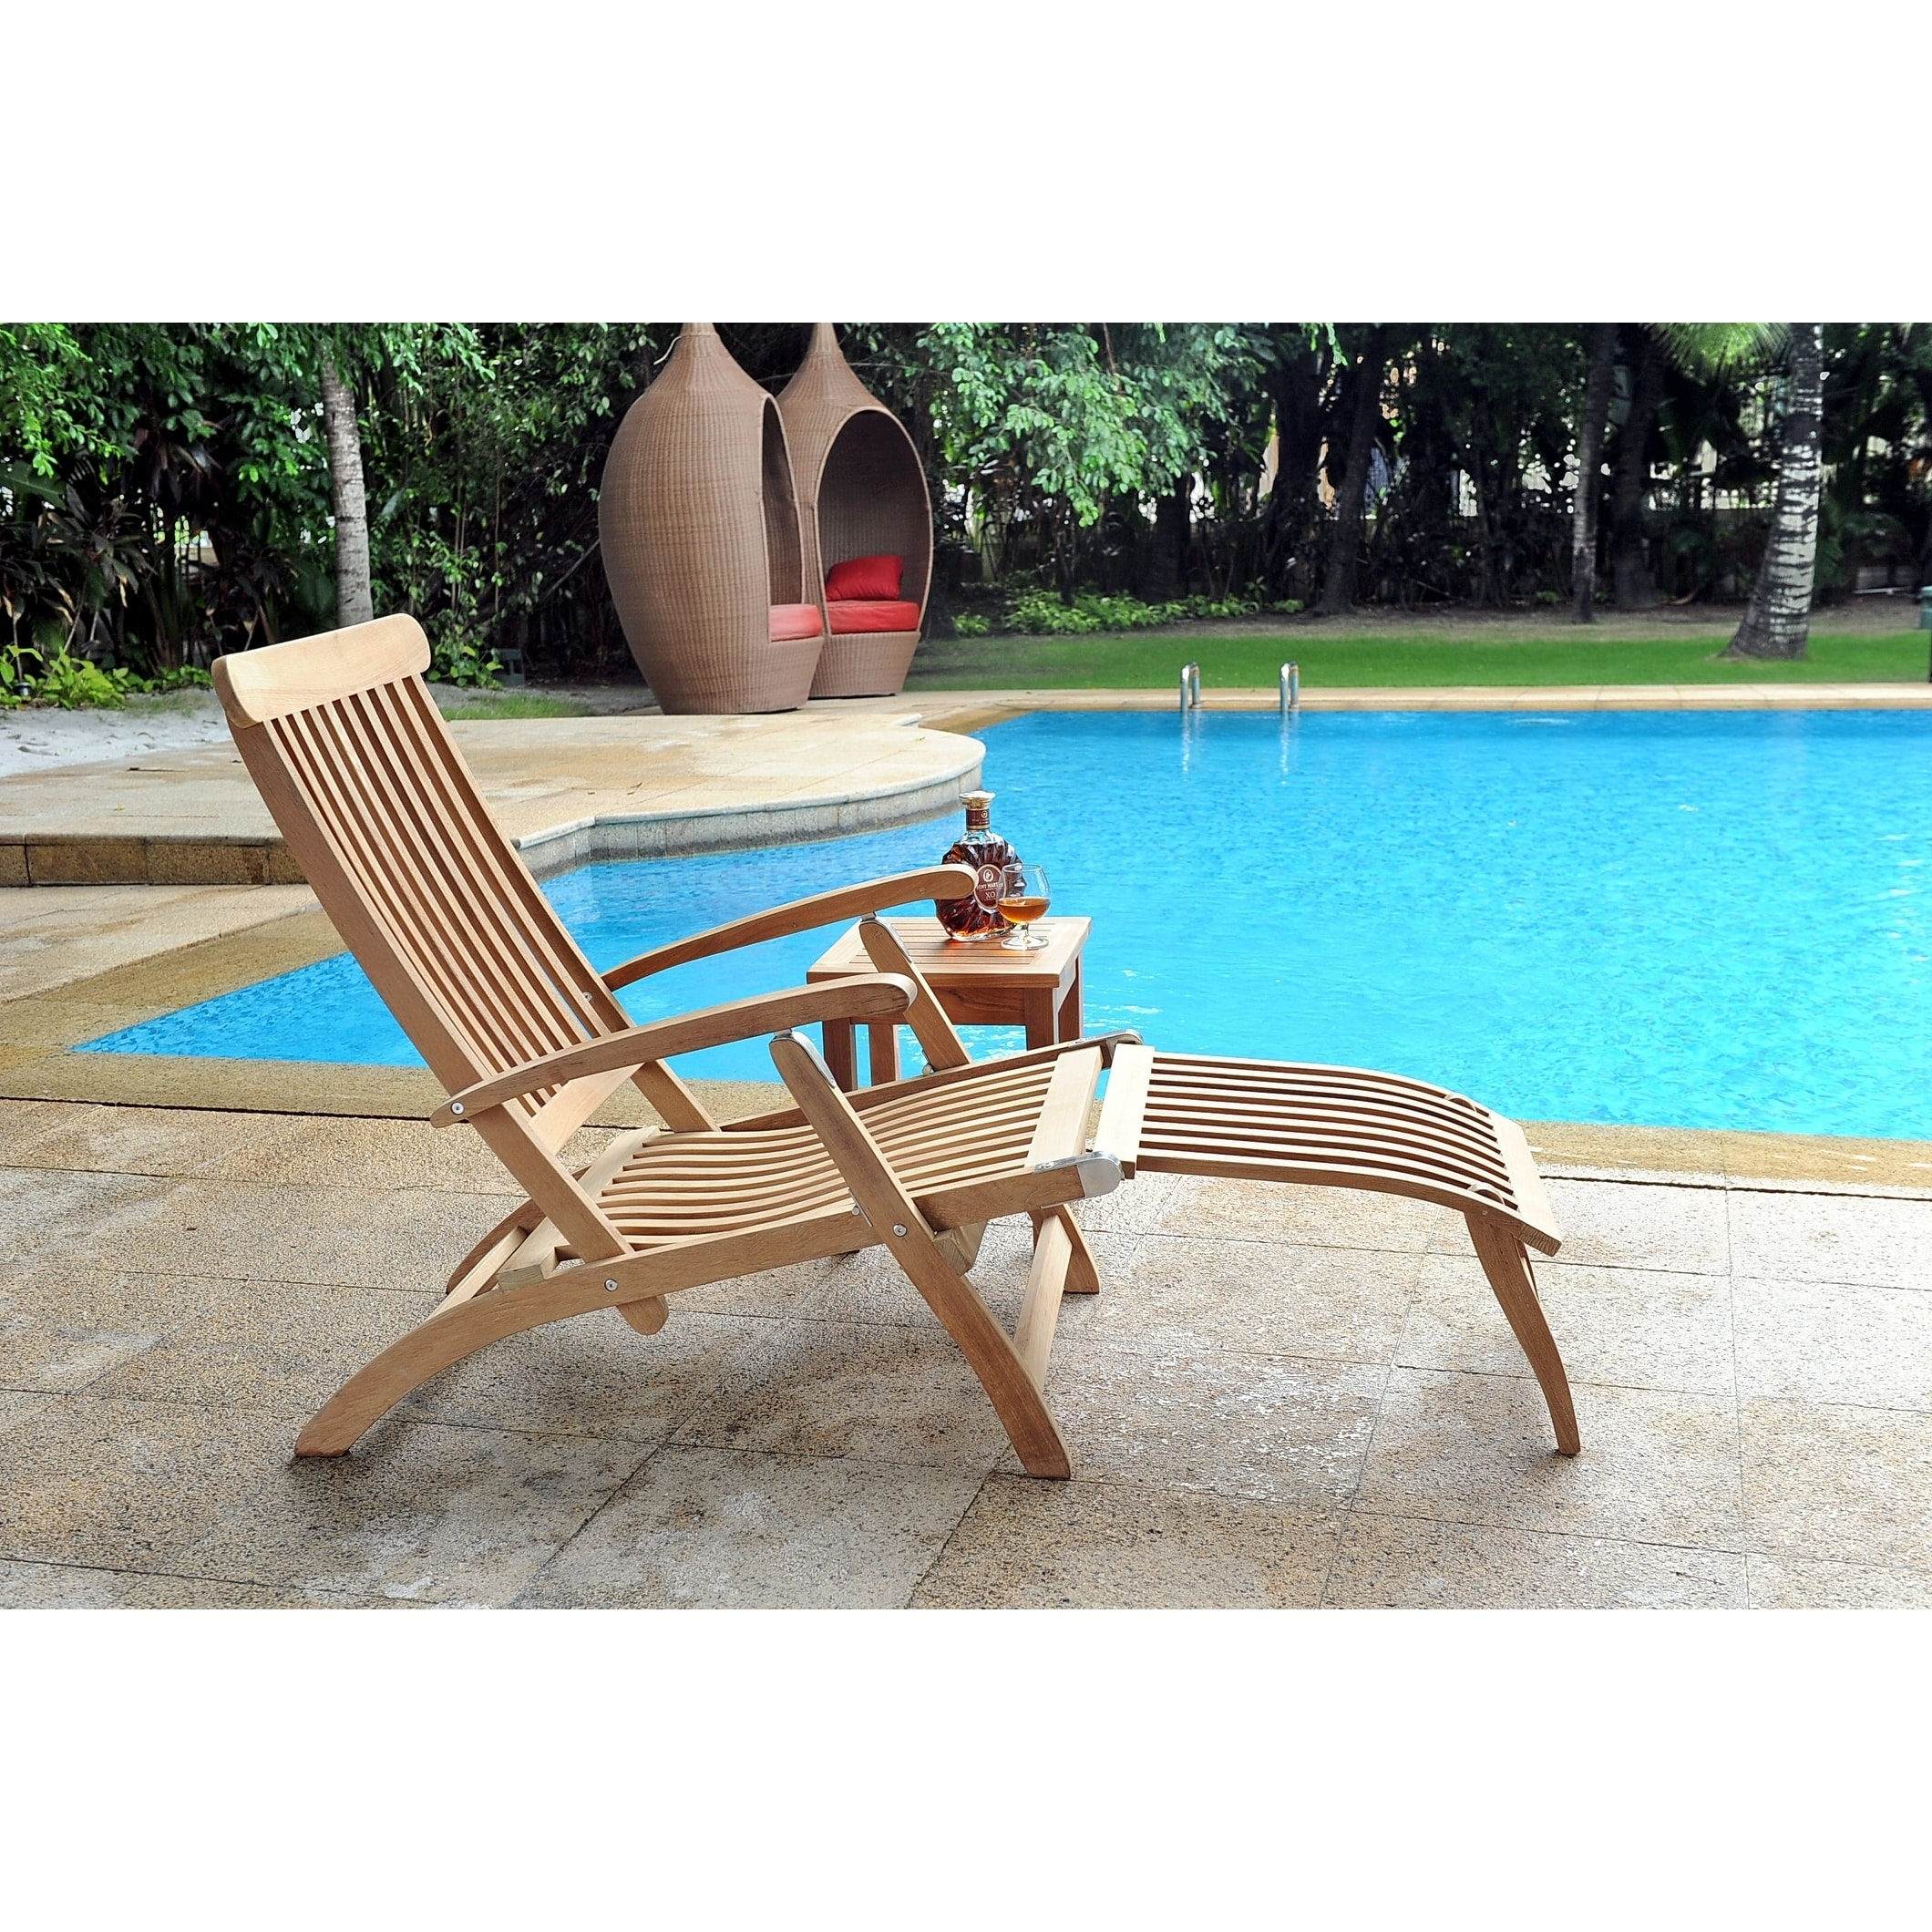 Steamer Outdoor Folding Teak Chaise Lounge Chair Free Shipping Today 18095324